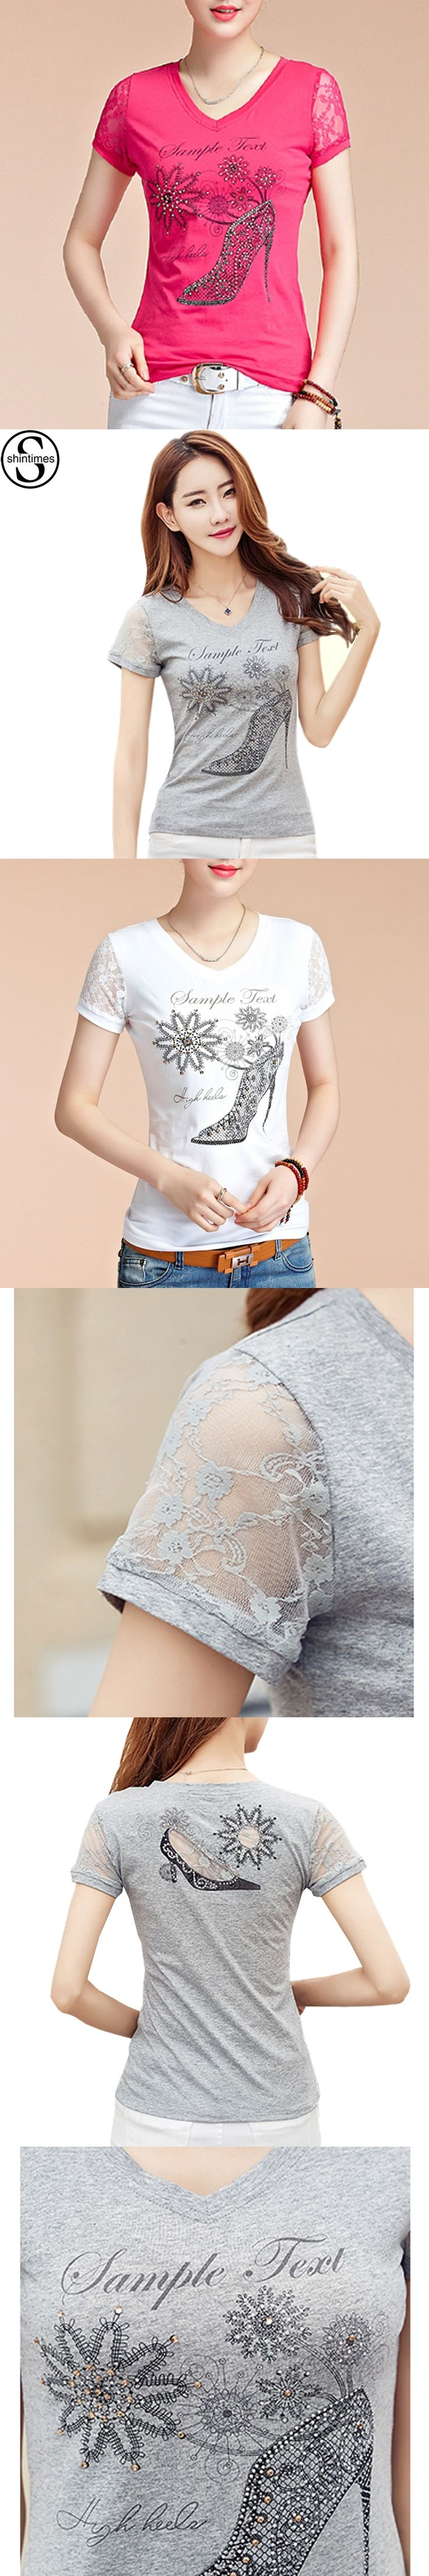 Mujer Tops T Shirt Women 2017 Summer Lace Patchwork Short Sleeves Woman Clothing V-Neck Diamonds Print Cotton T-Shirt Femme Tees